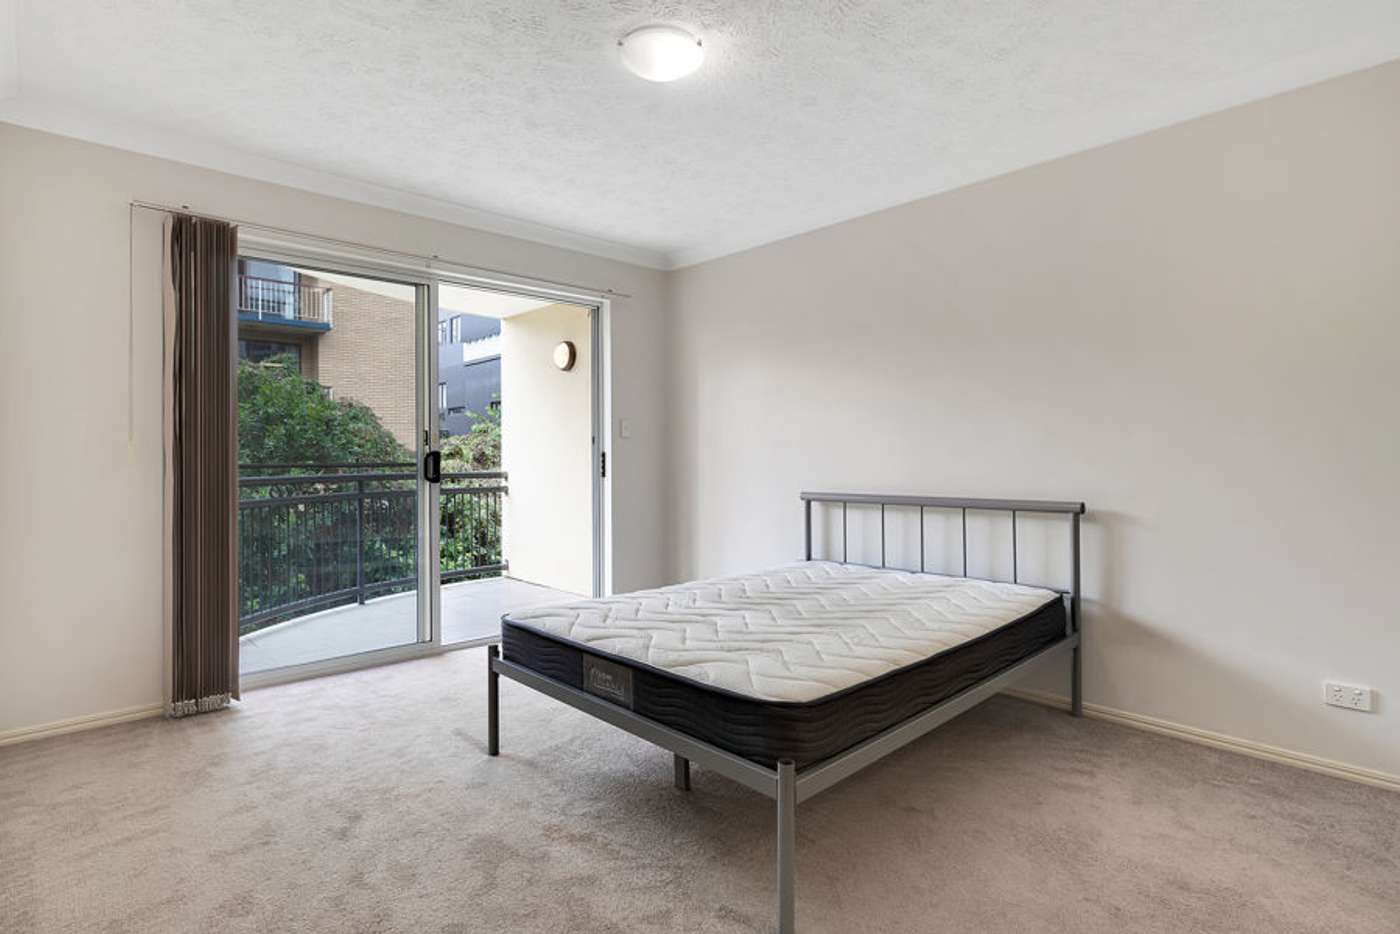 Sixth view of Homely apartment listing, 3/10 Lissner street, Toowong QLD 4066